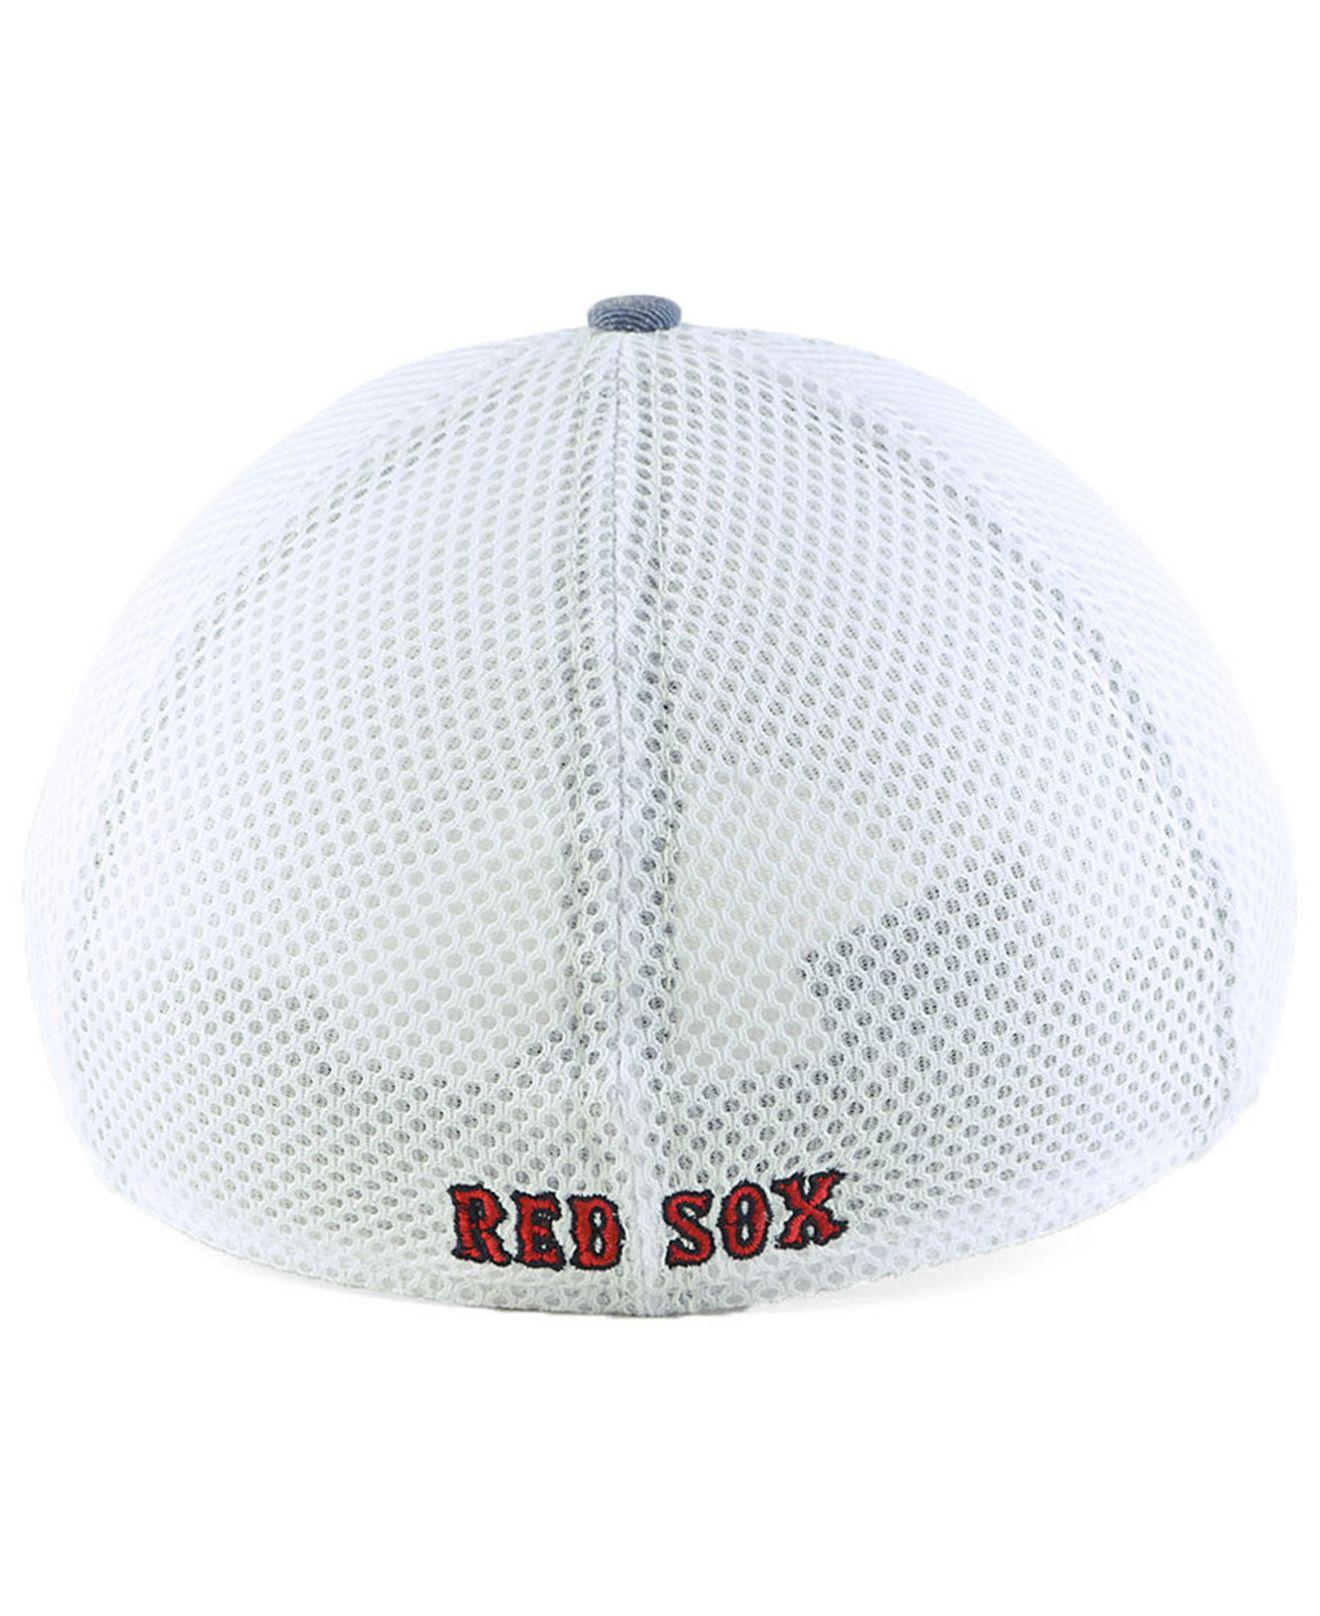 716d36174f0 ... greece lyst ktz boston red sox hooge neo 39thirty cap in blue for men  1563f 347d4